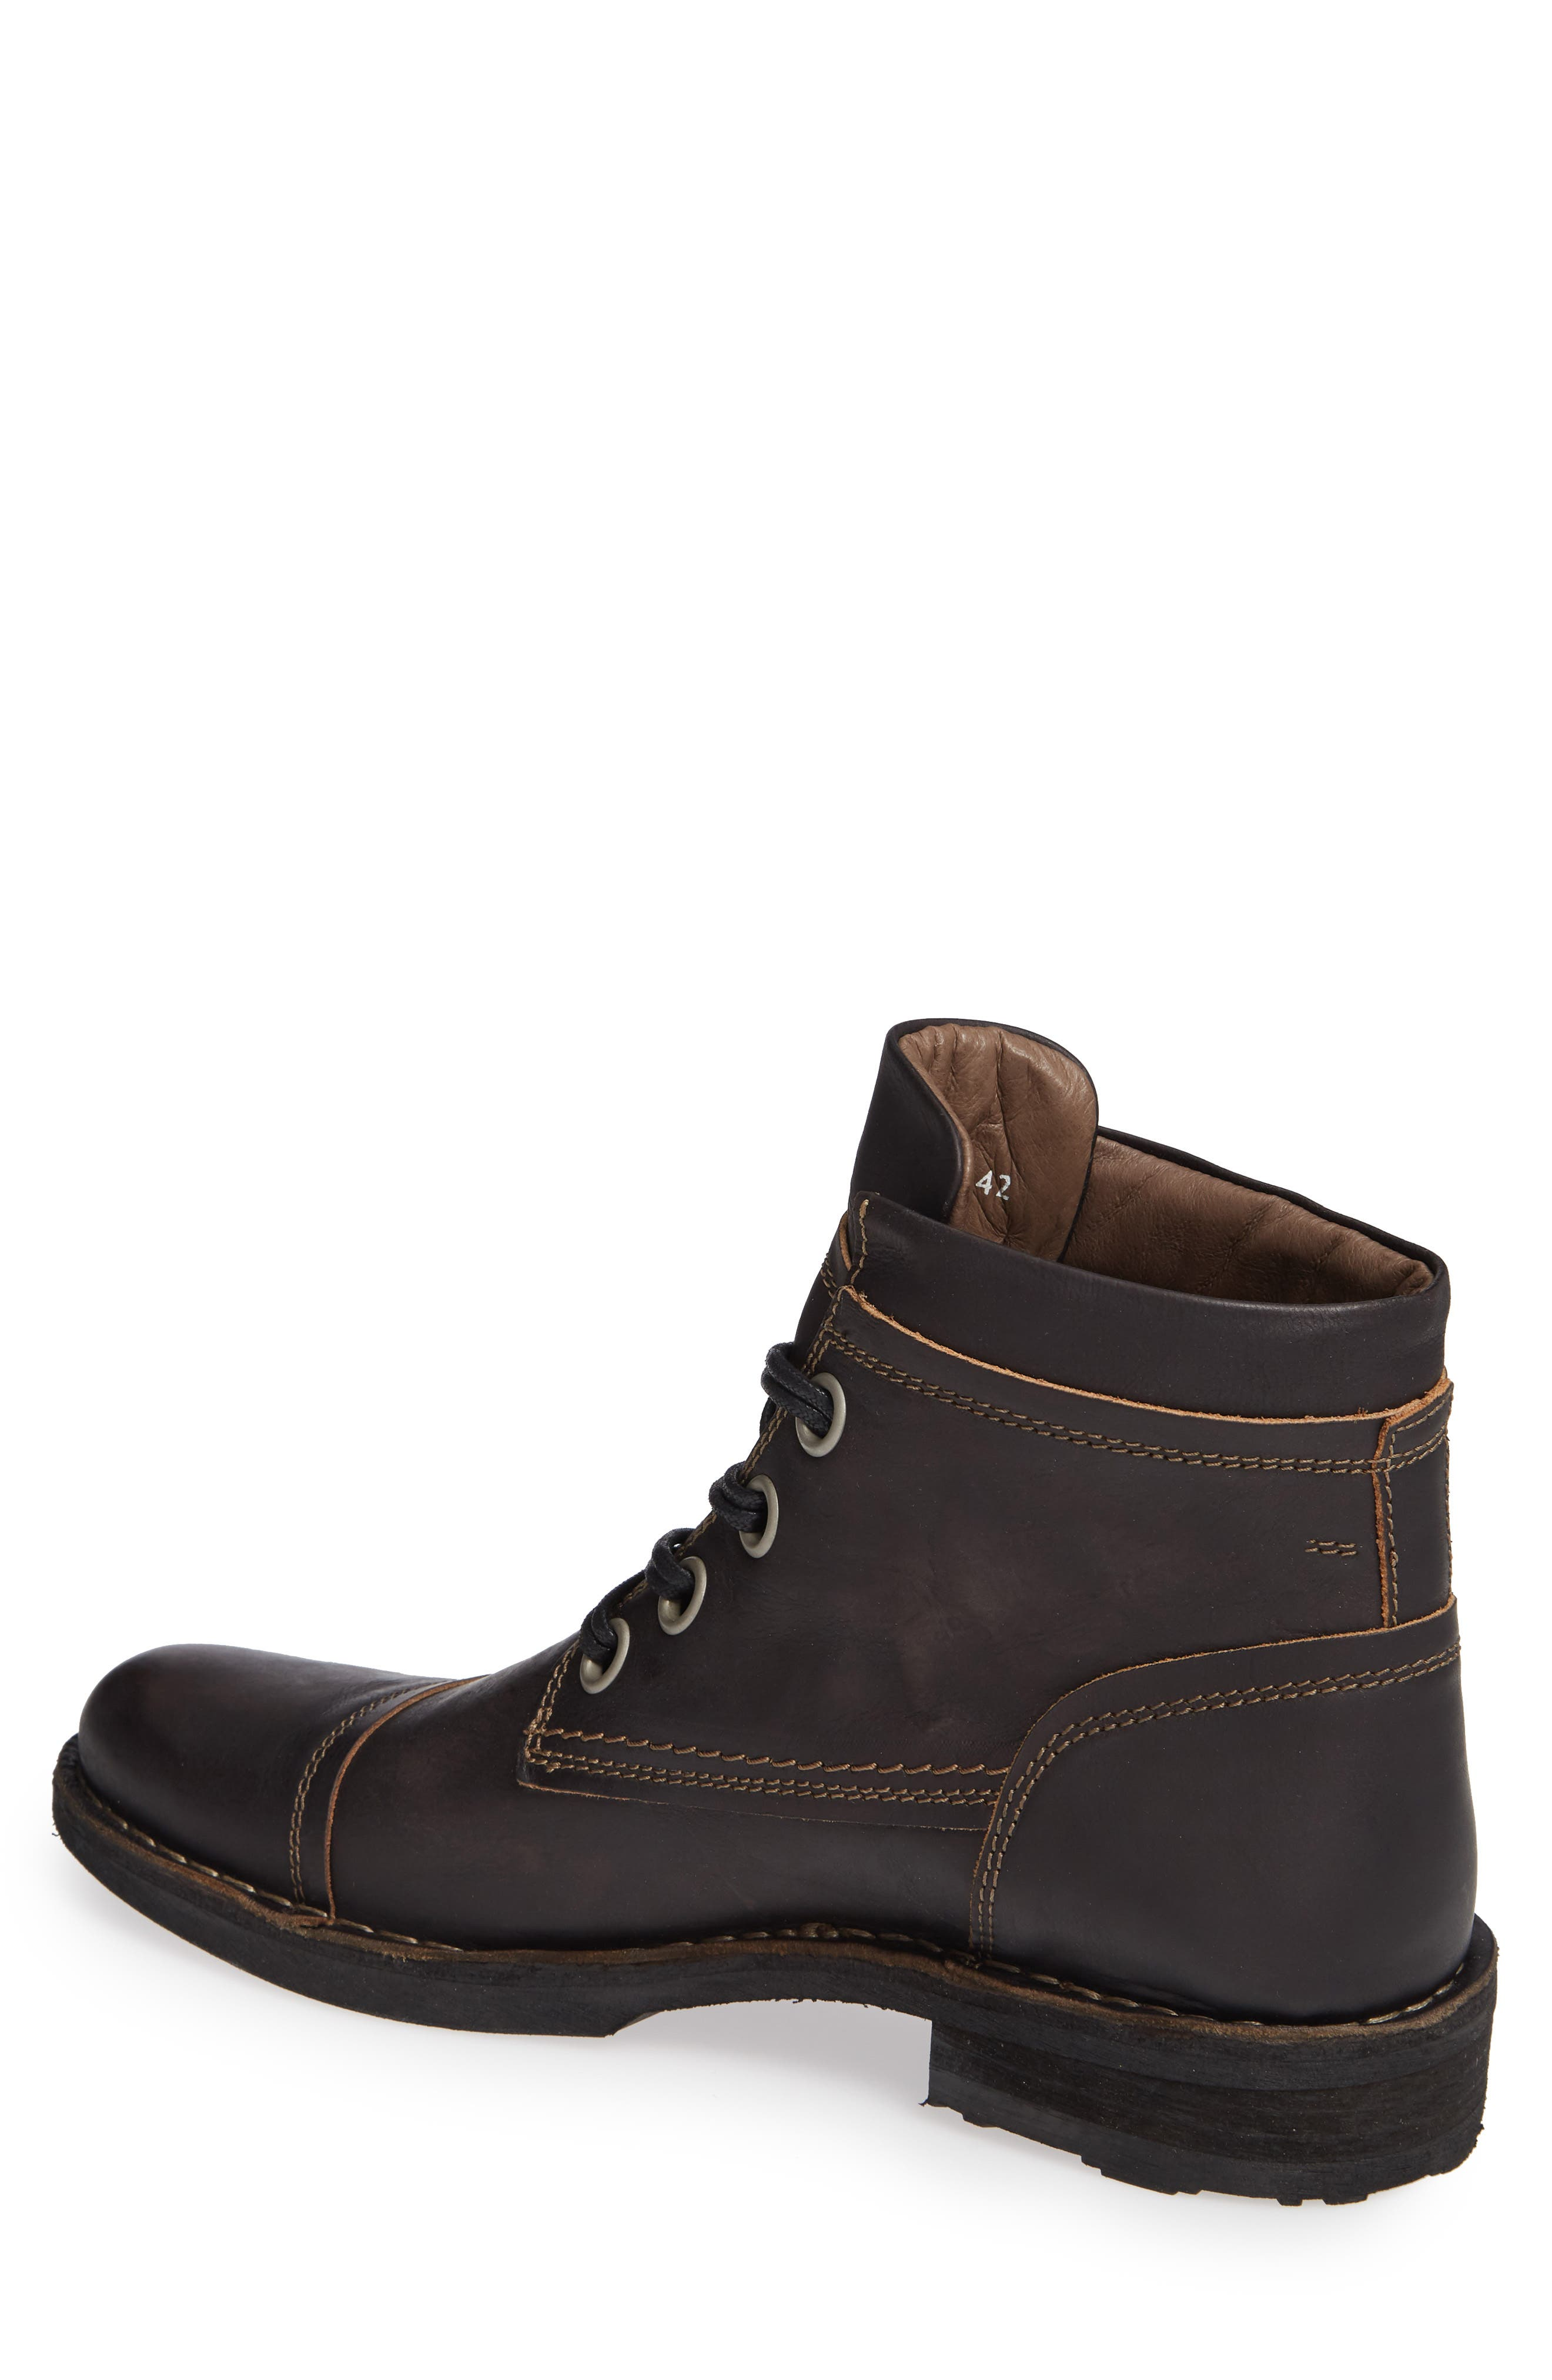 Rize Cap Toe Boot,                             Alternate thumbnail 2, color,                             BLACK SEBTA